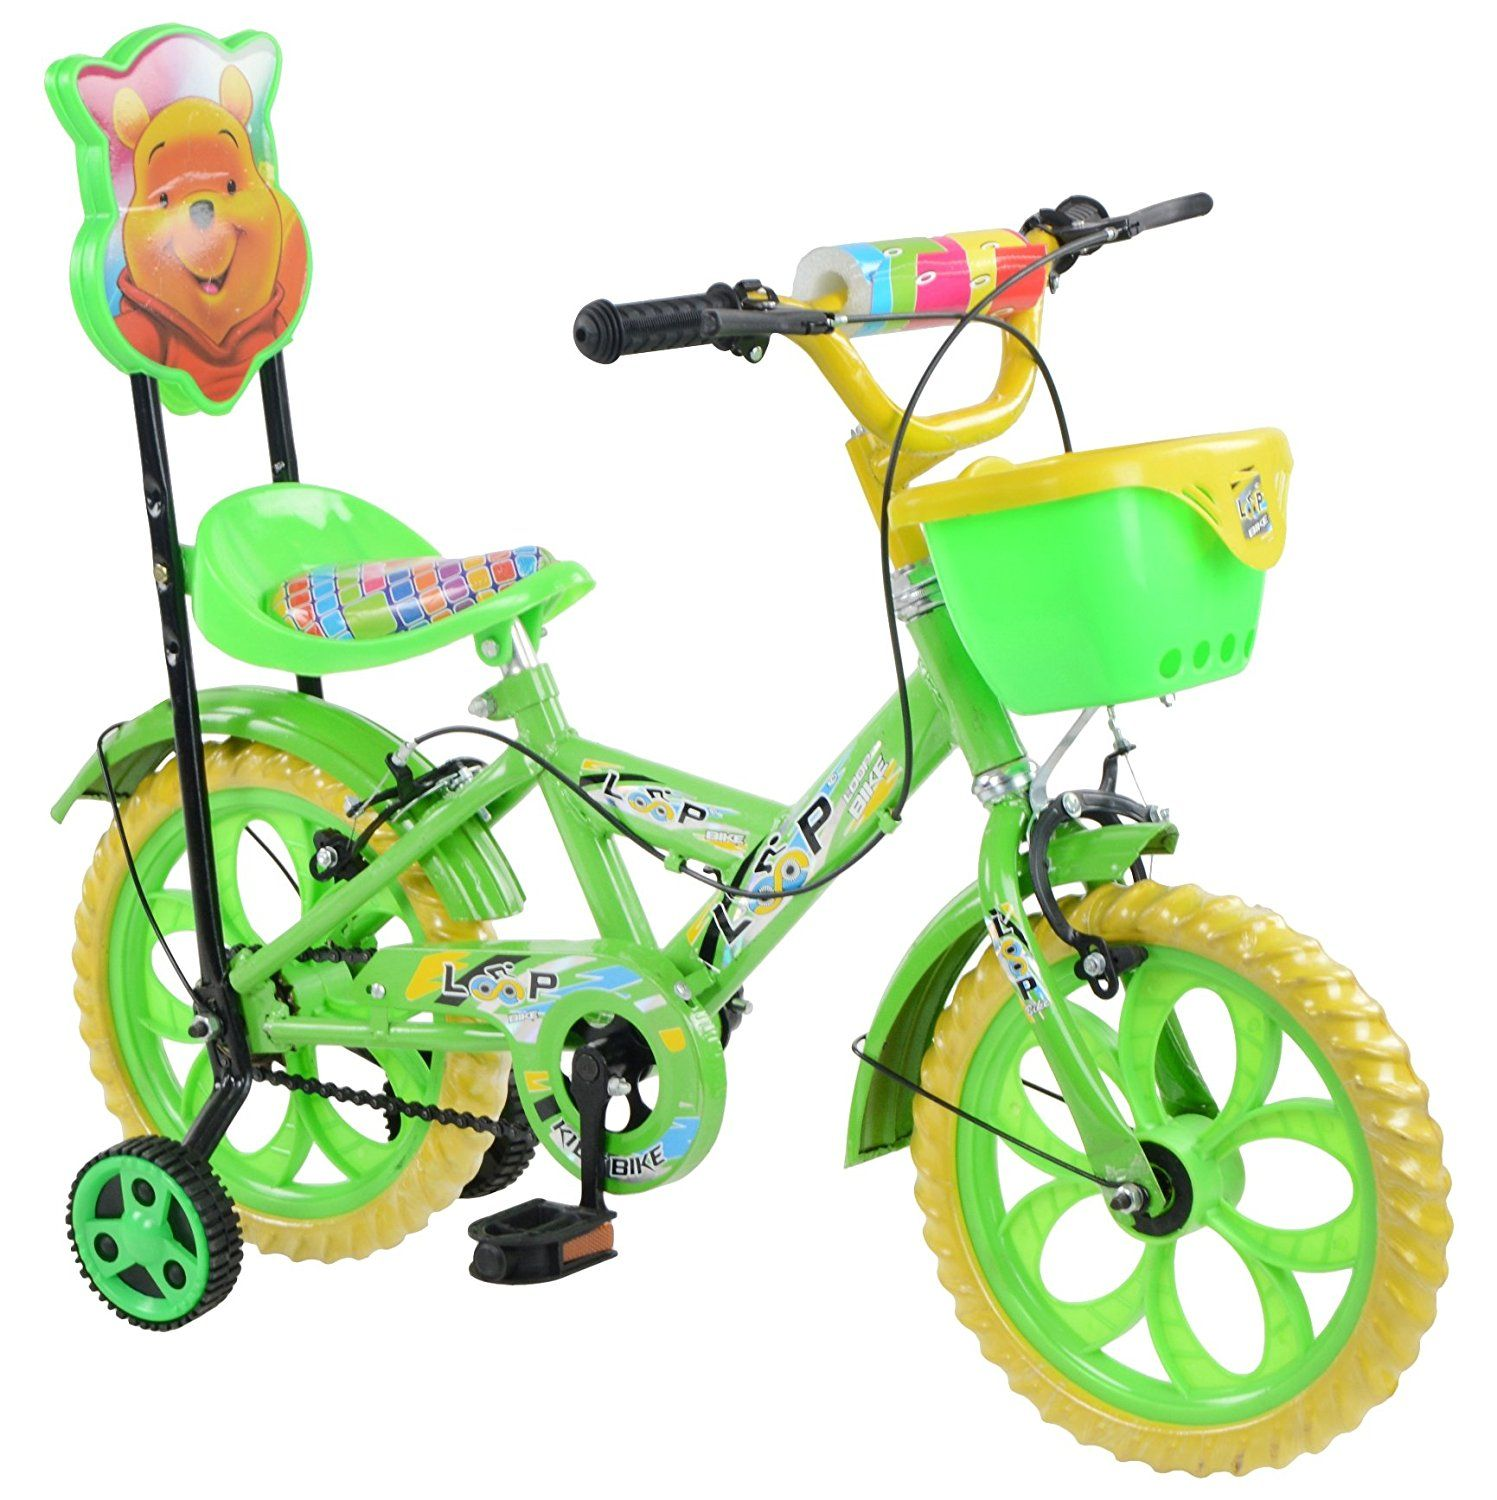 Top 5 Baby Bicycle For 2 Year Old Kids In India Baby Bicycle